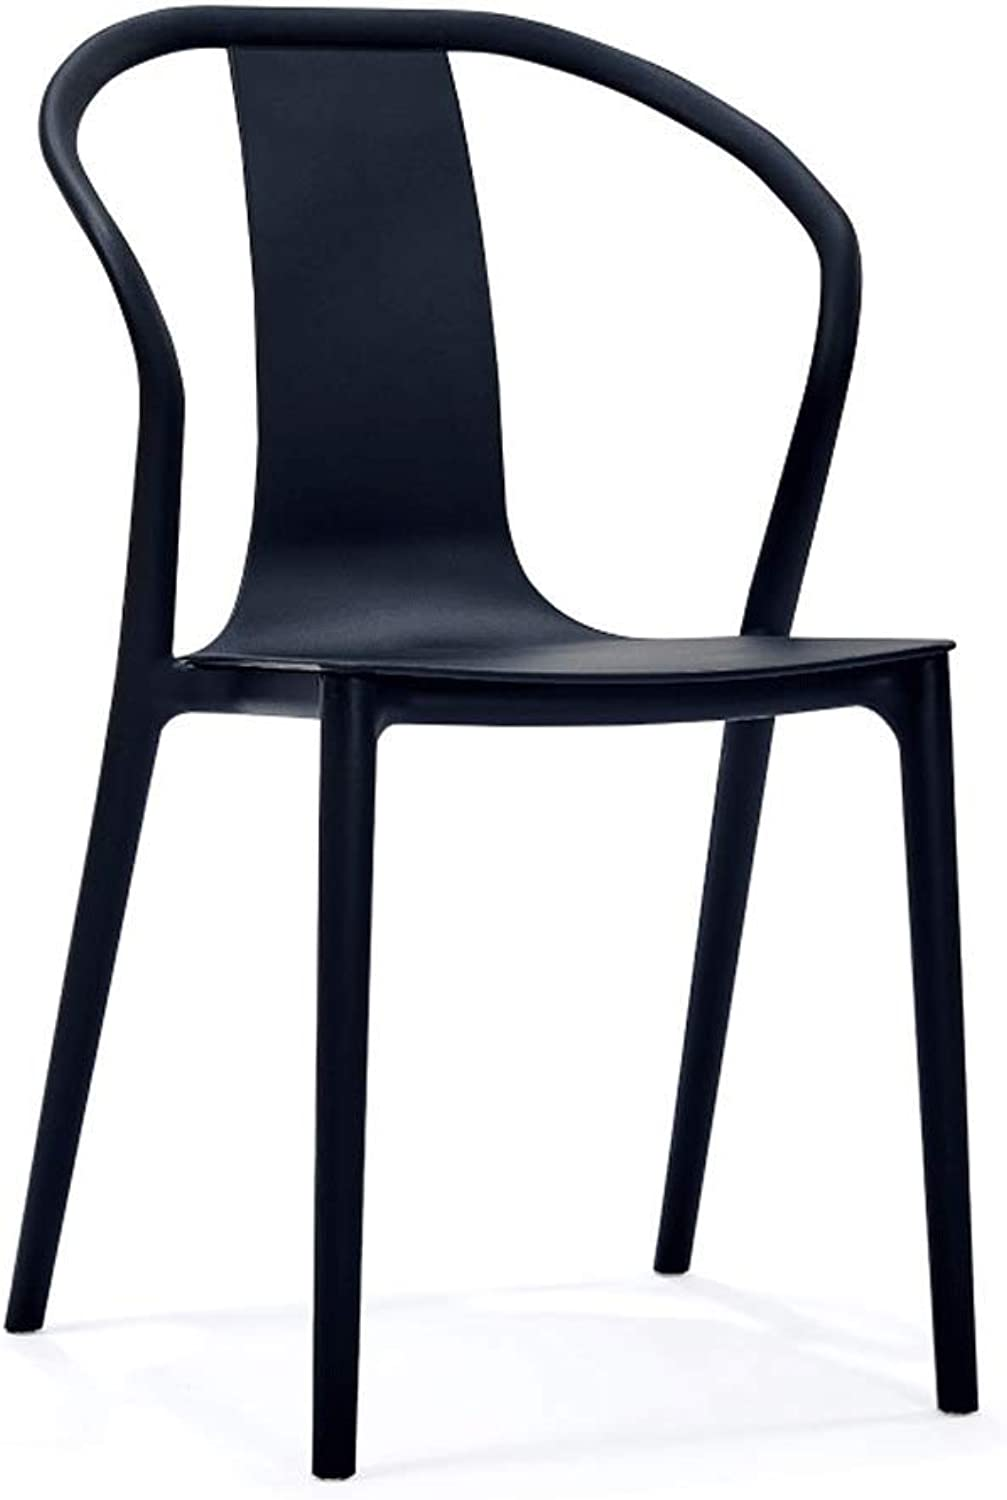 SLH Modern Minimalist Chair Armrest Dining Chair Nordic Home Living Room Casual Fashion Plastic Chair (color   Black)